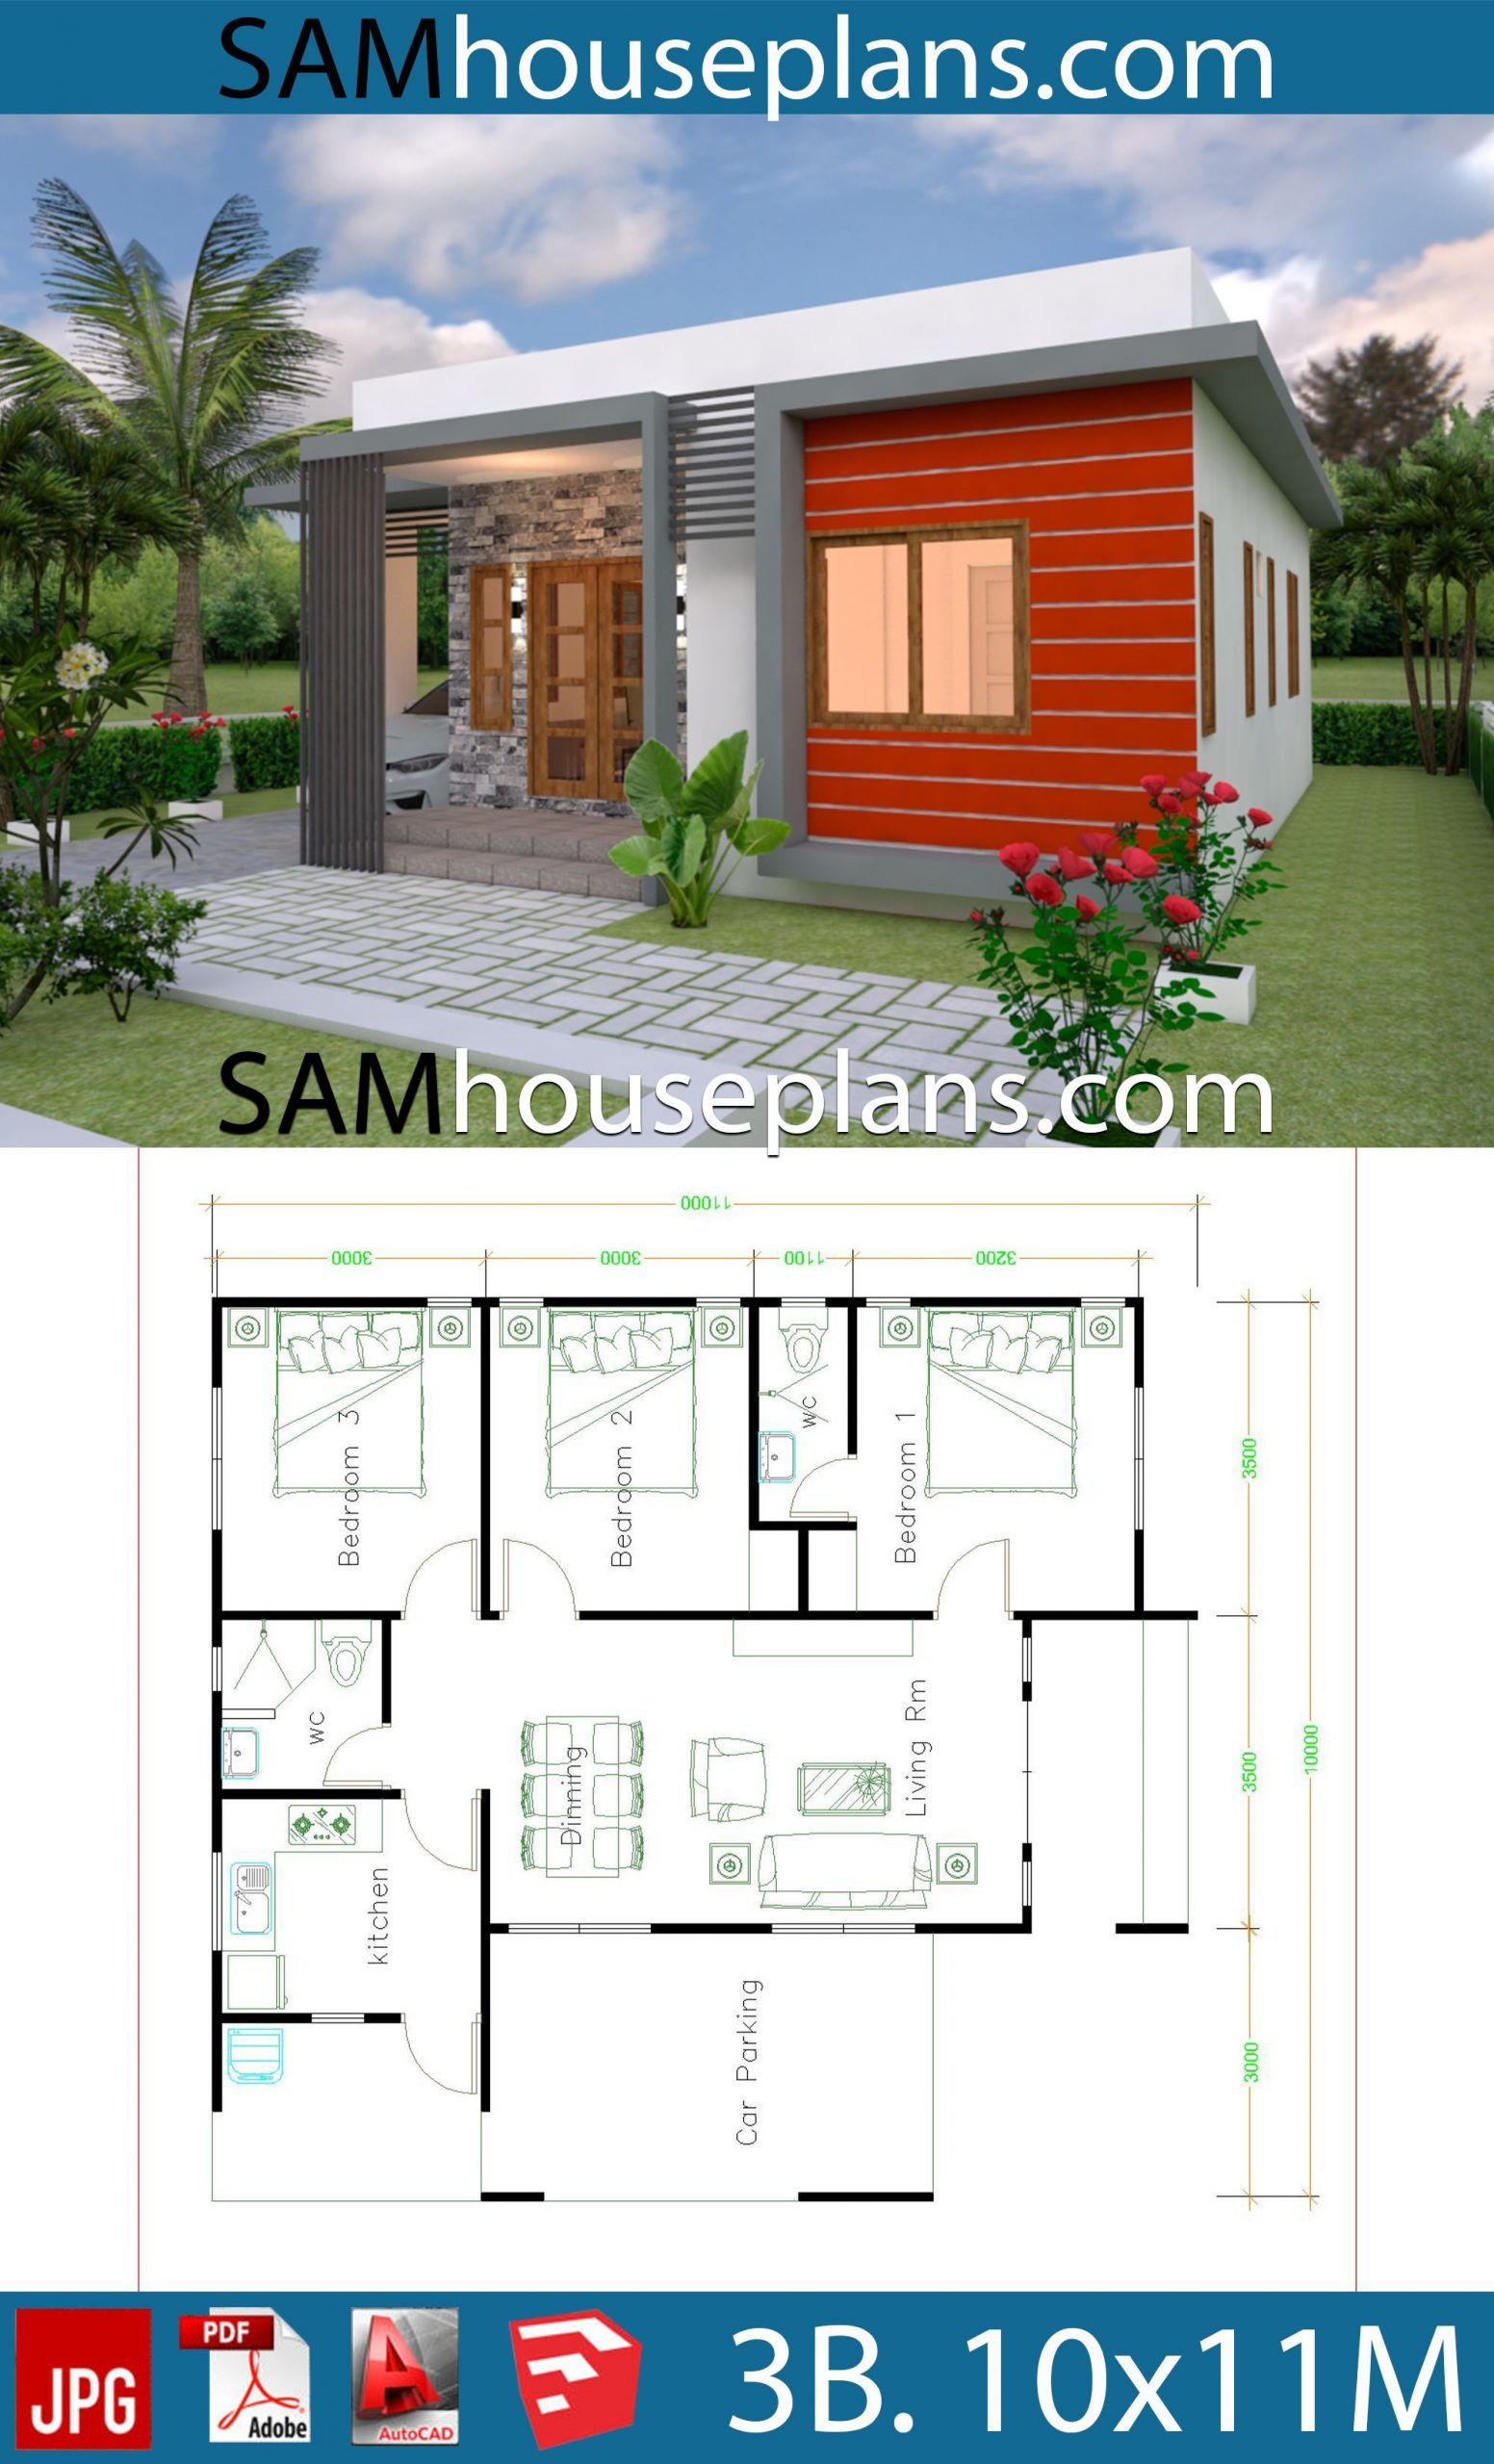 House Building Plans Free Download 2021 in 2020 ...